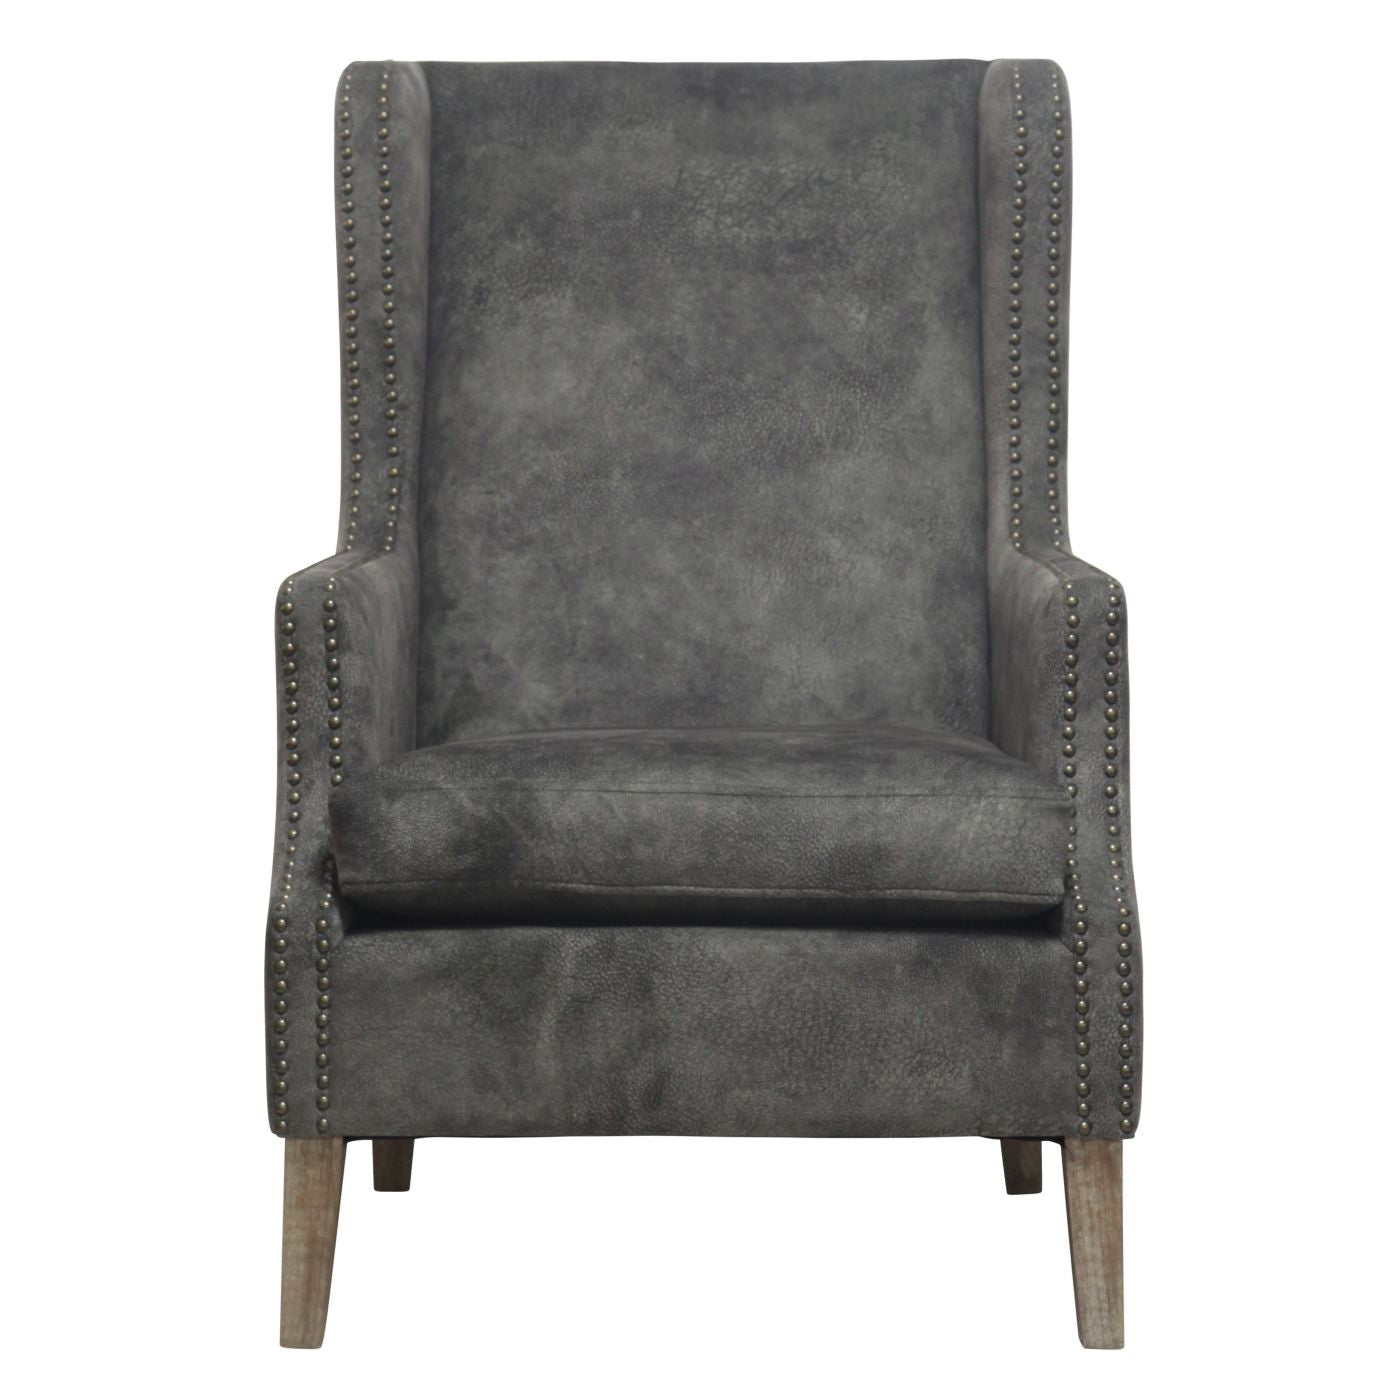 ... Ellington Wing Arm Chair Drift Wood Legs Pewter Hide Accent ...